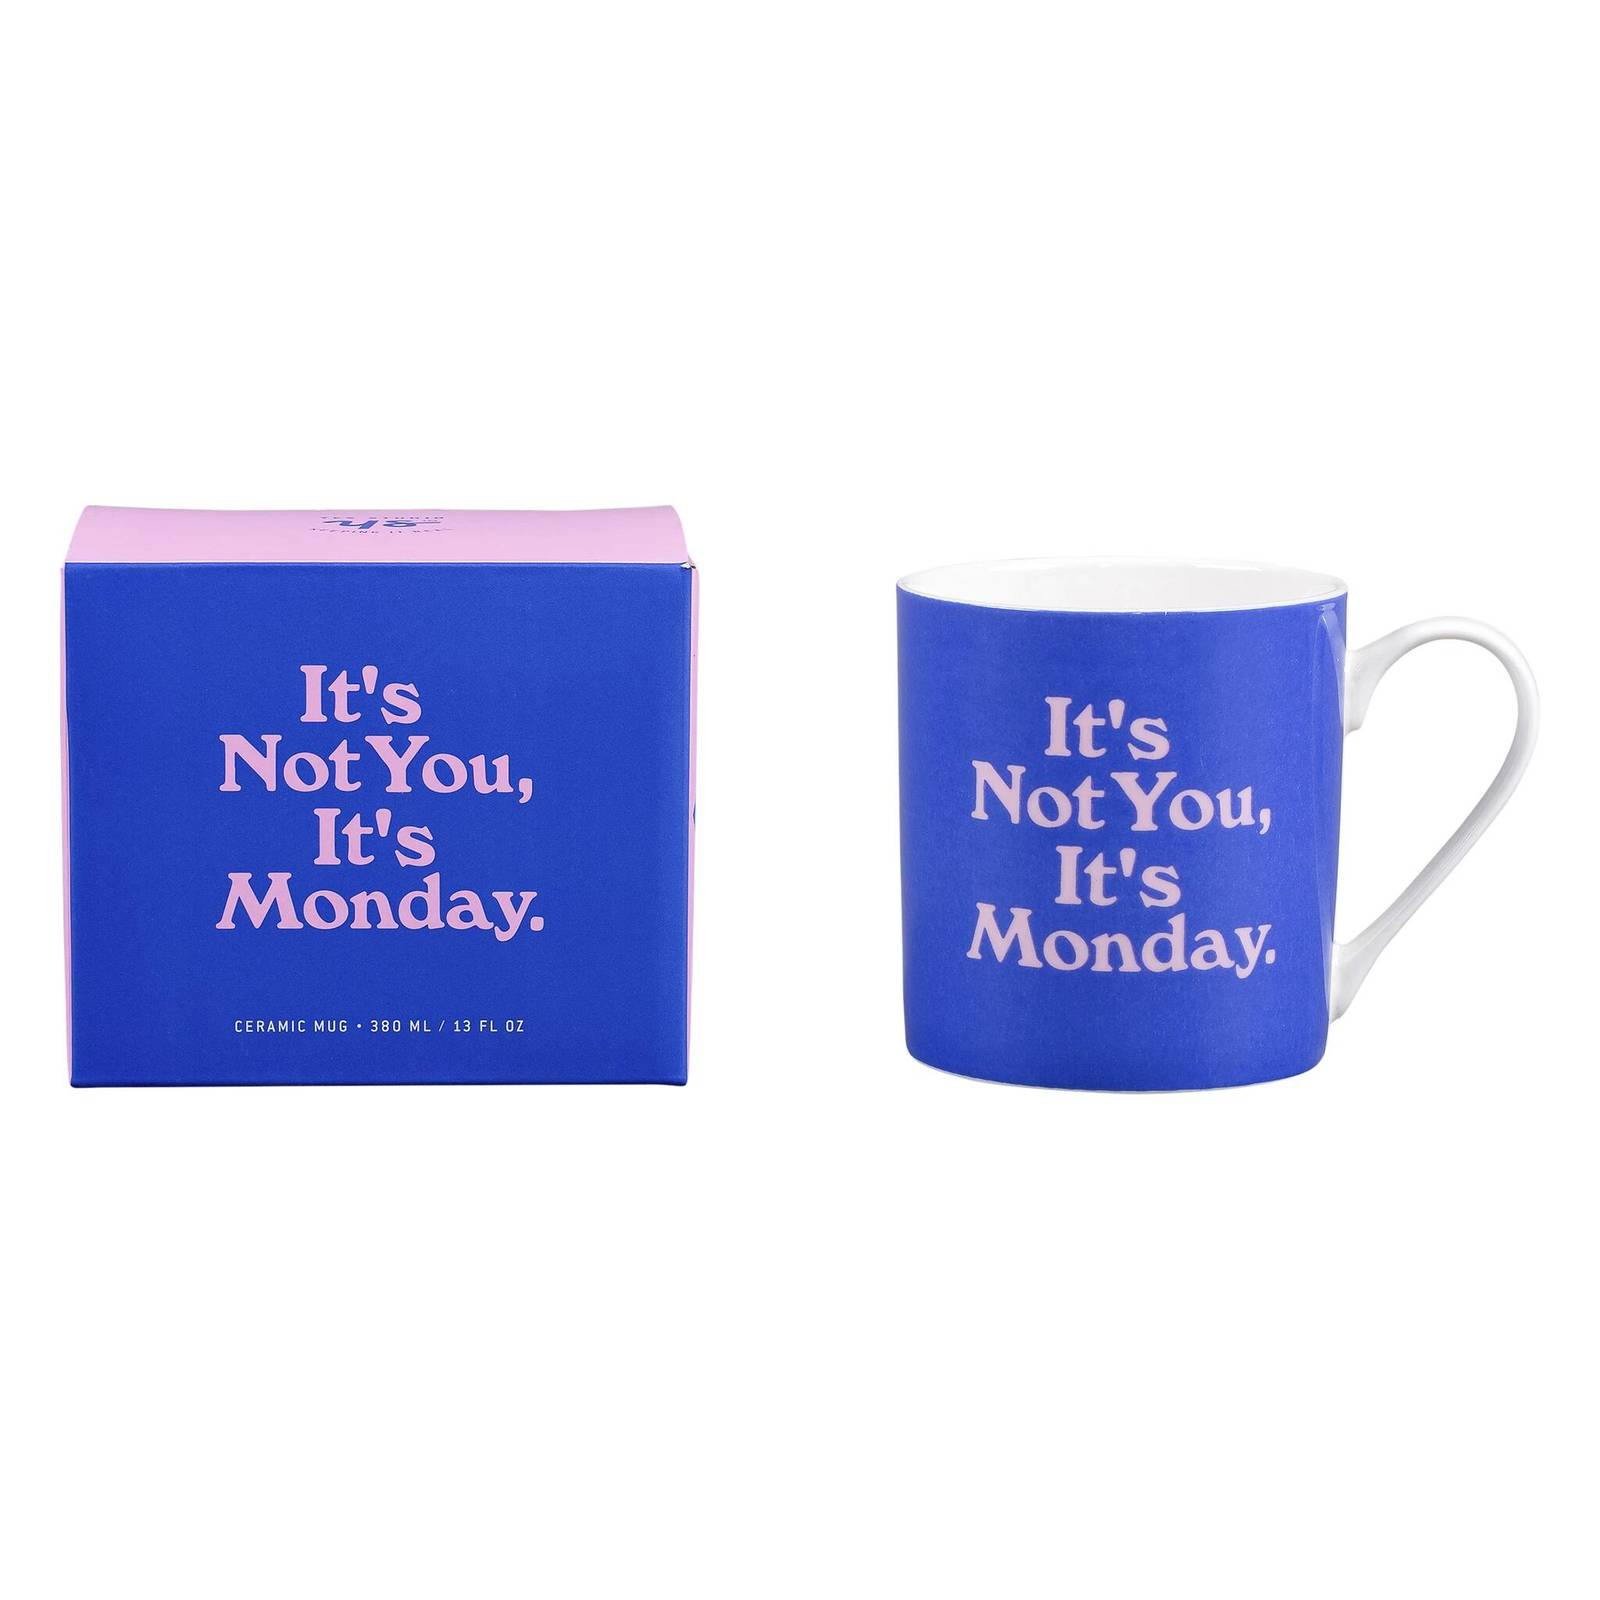 Yes Studio: Ceramic Mug - Its Not You image